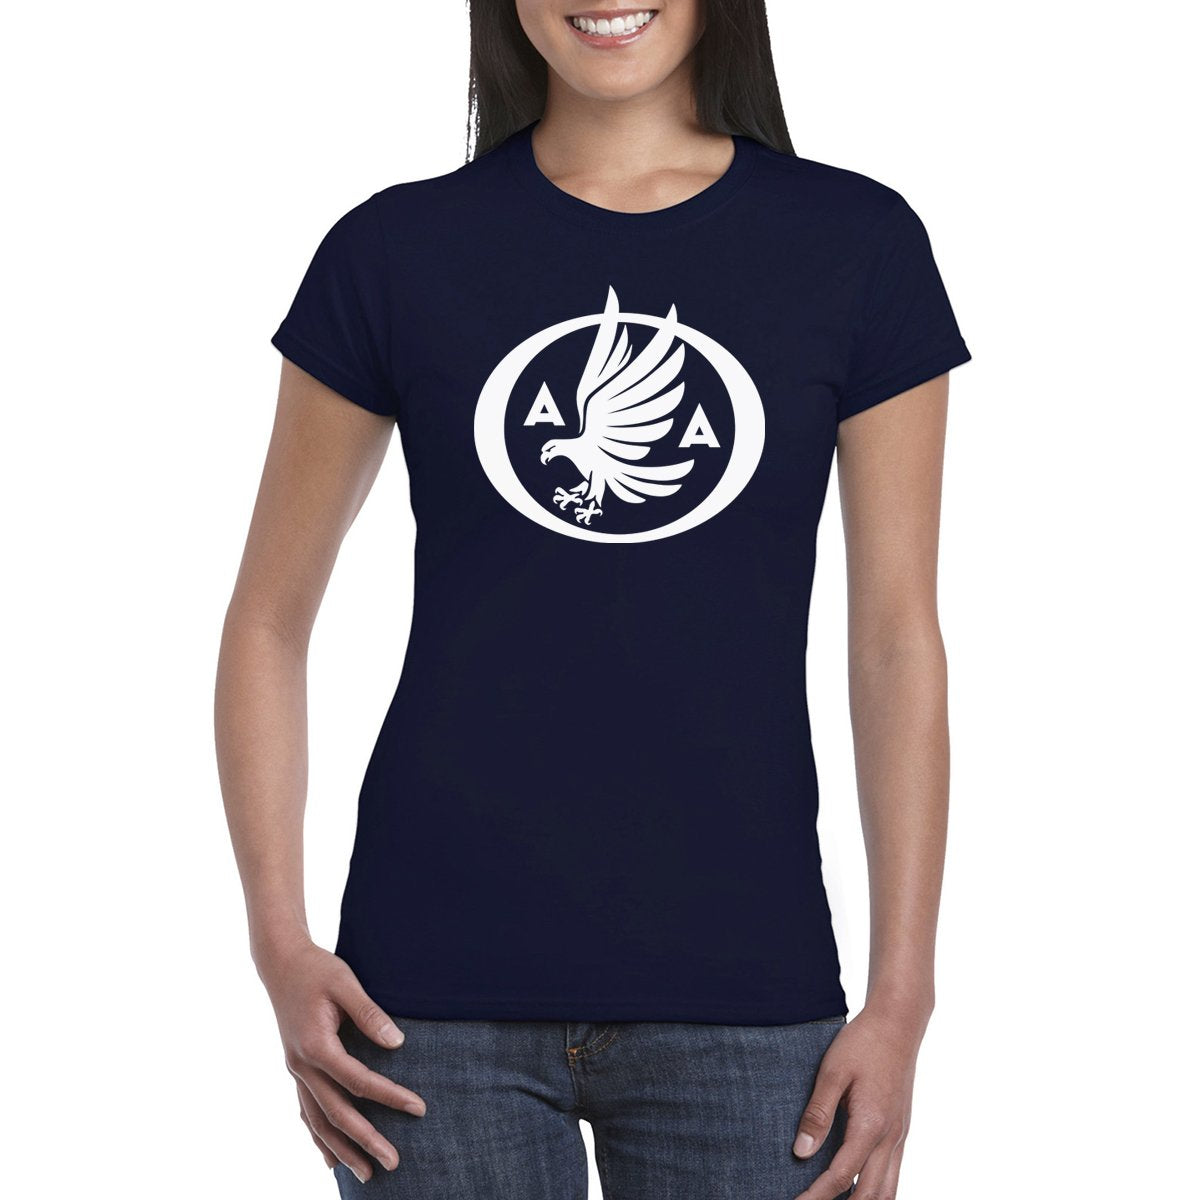 AUSTRALIAN AVIATION RETRO Women's T-Shirt